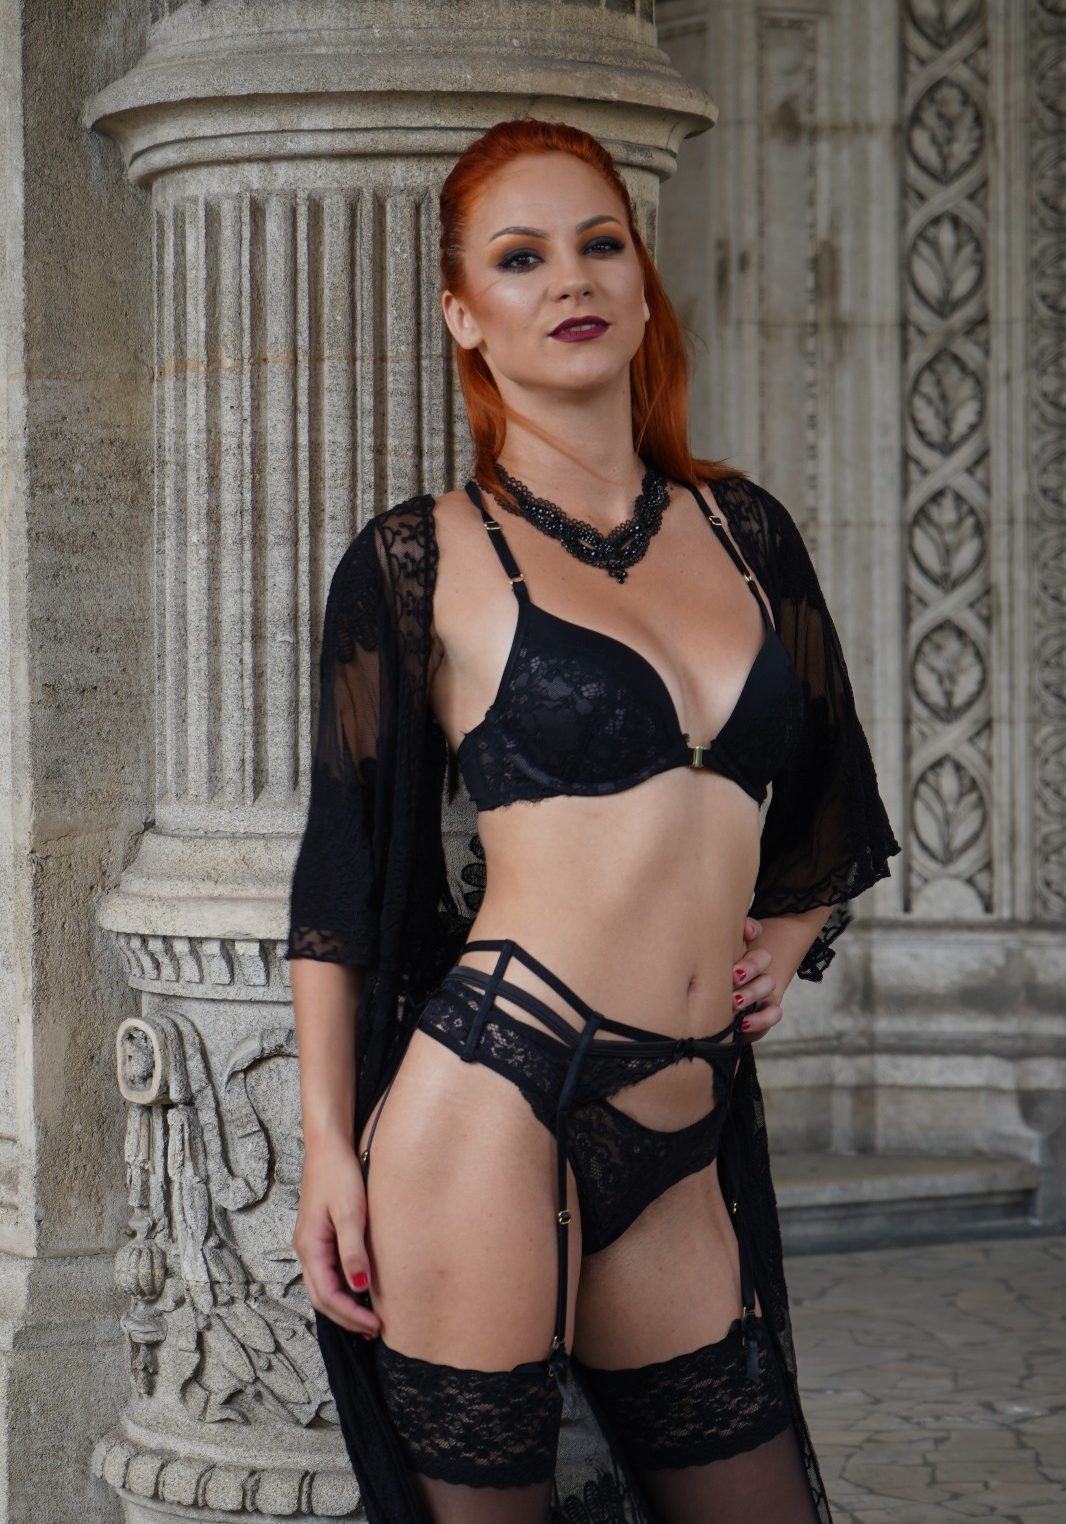 Daisy the real porn star in Vienna